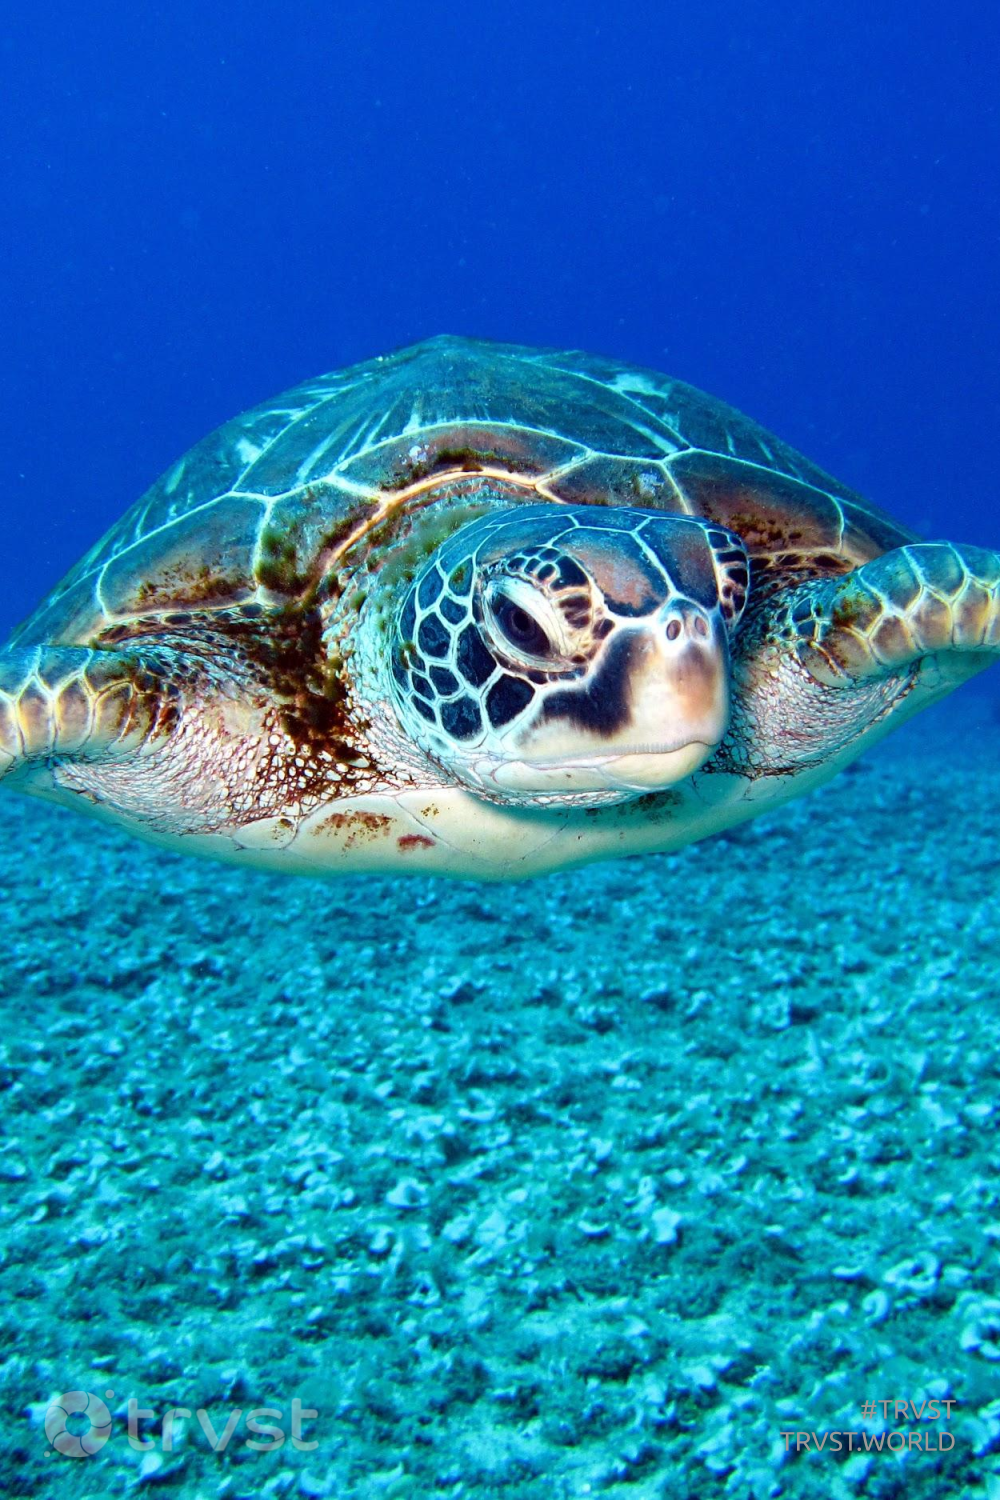 #trvst #marinelife #dosomething #savetheturtle #dotherightthing #intheocean #gogreen #amazingworld #bethechange #savetheoceans #takeaction 📷 @richard-segal-732340 on pexels